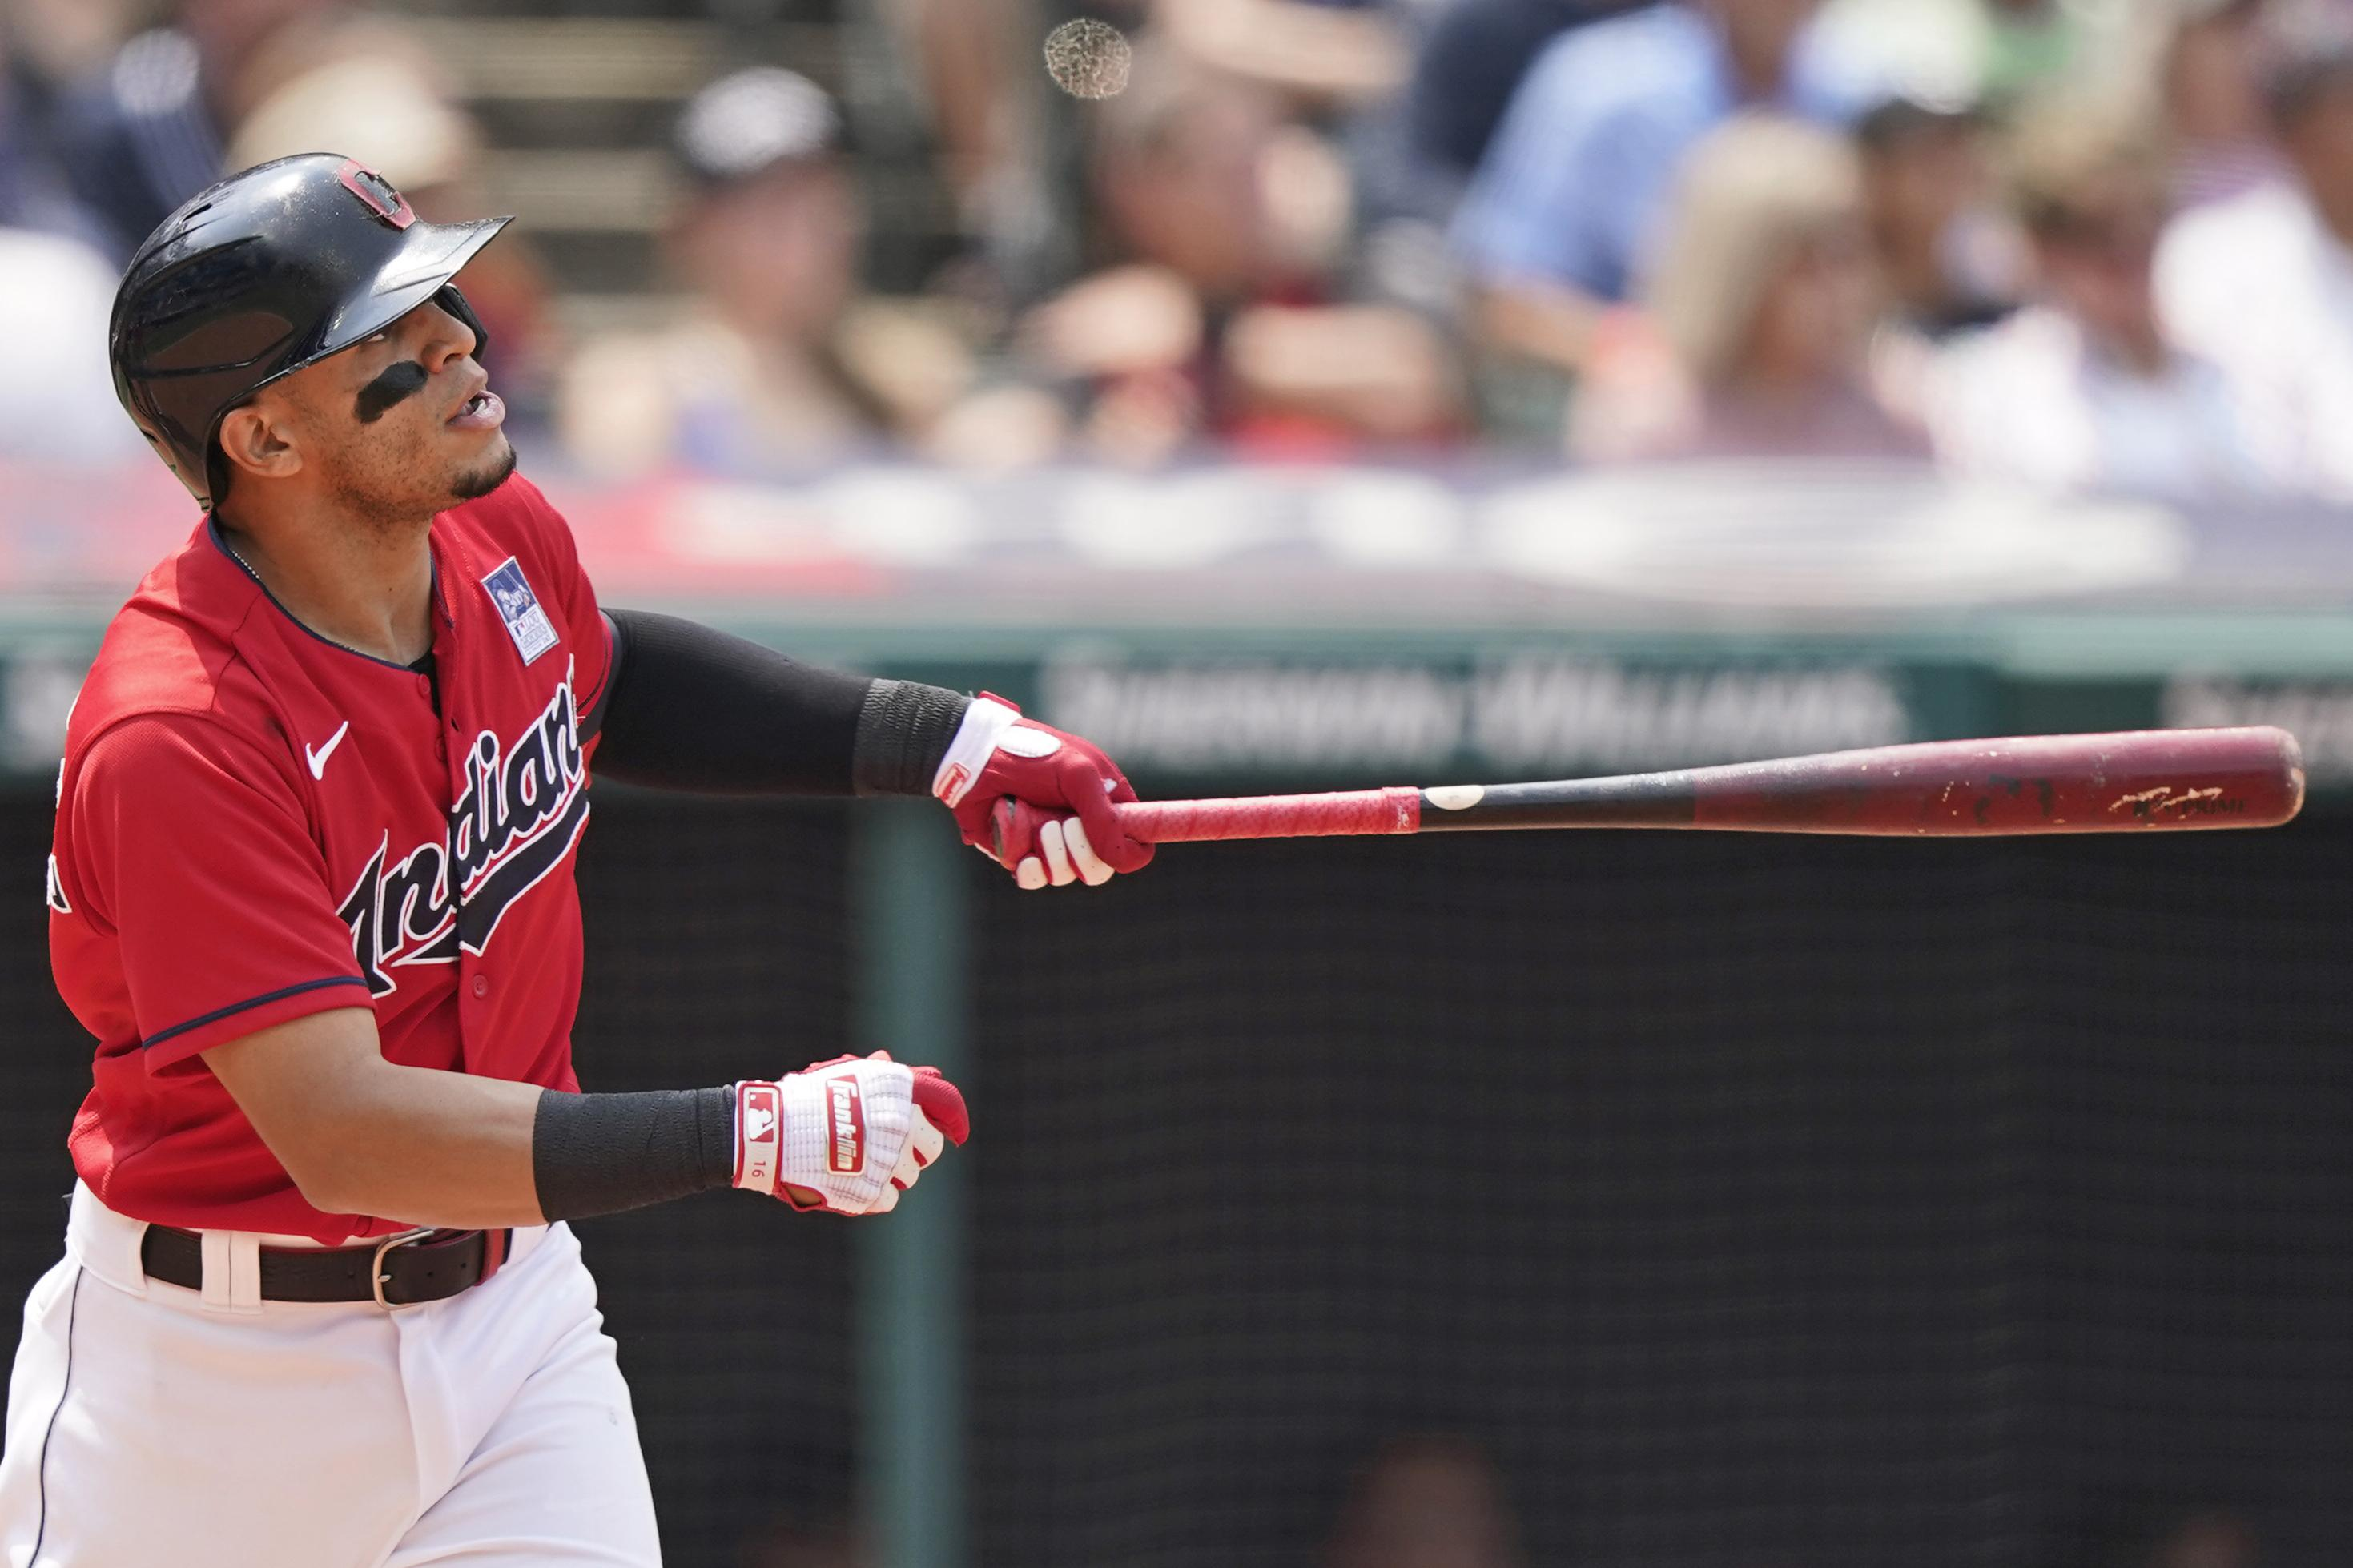 White flag: Indians trade 2B Hernandez to 1st-place Sox - Associated Press